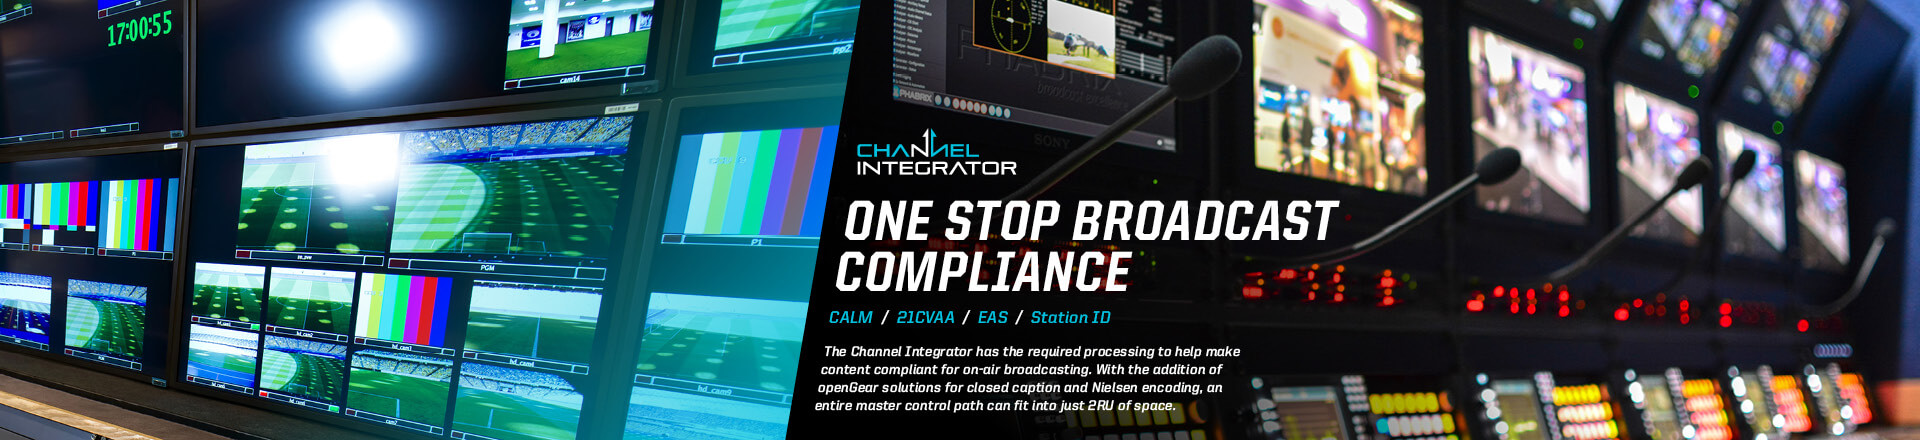 One Stop Compliance